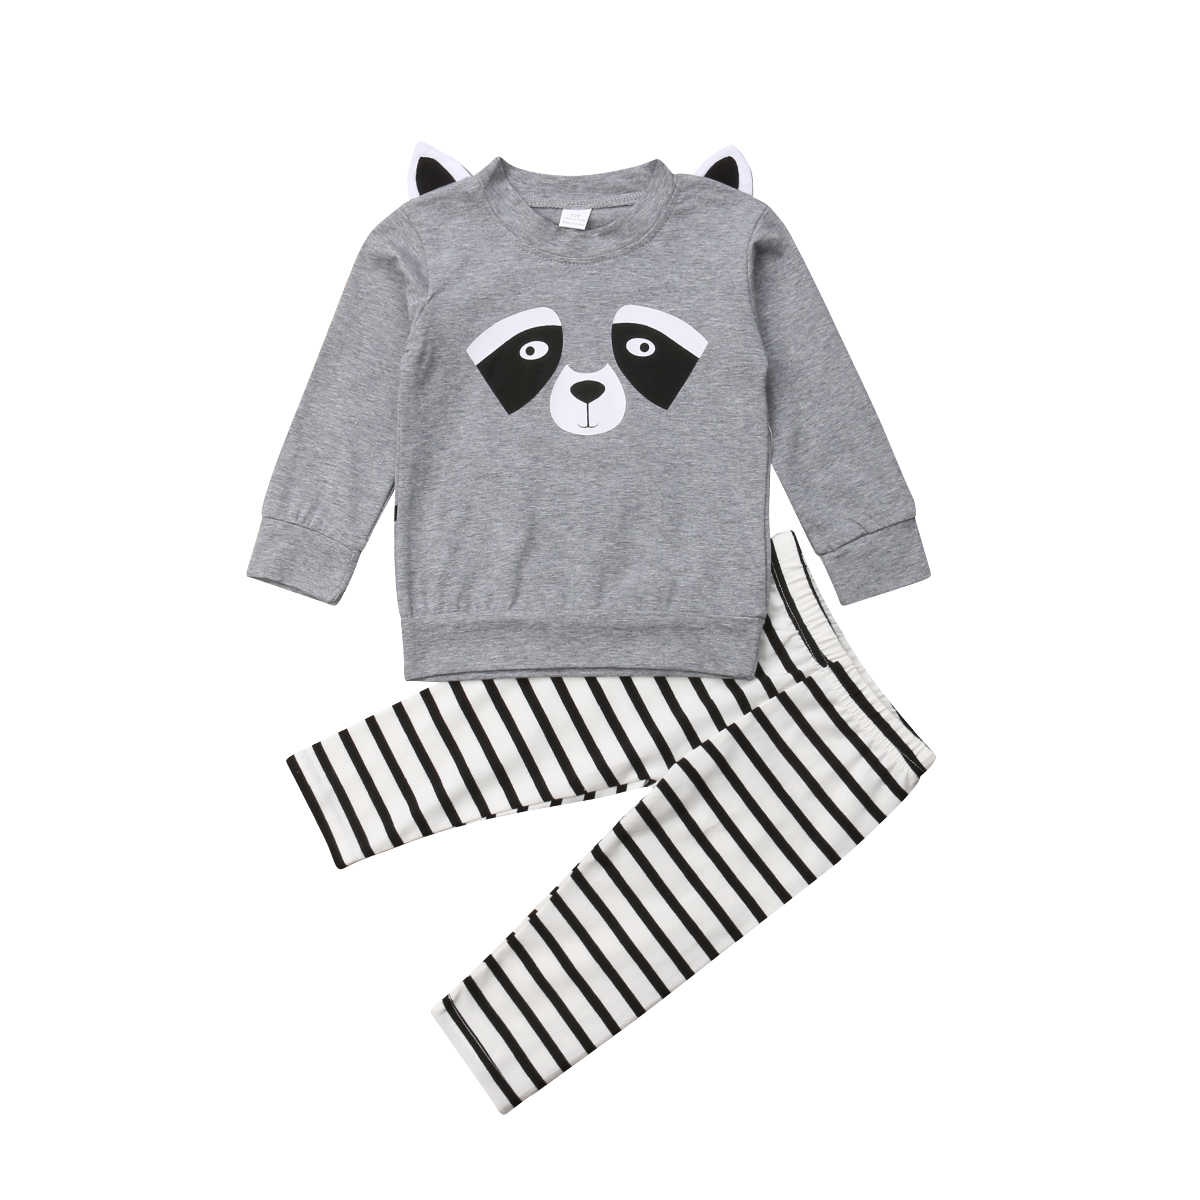 fb68da6193206 2Pcs Newborn Infant Baby Boy Girls Cotton Raccoon cat Tops T shirt Striped  Pants Trousers Outfits